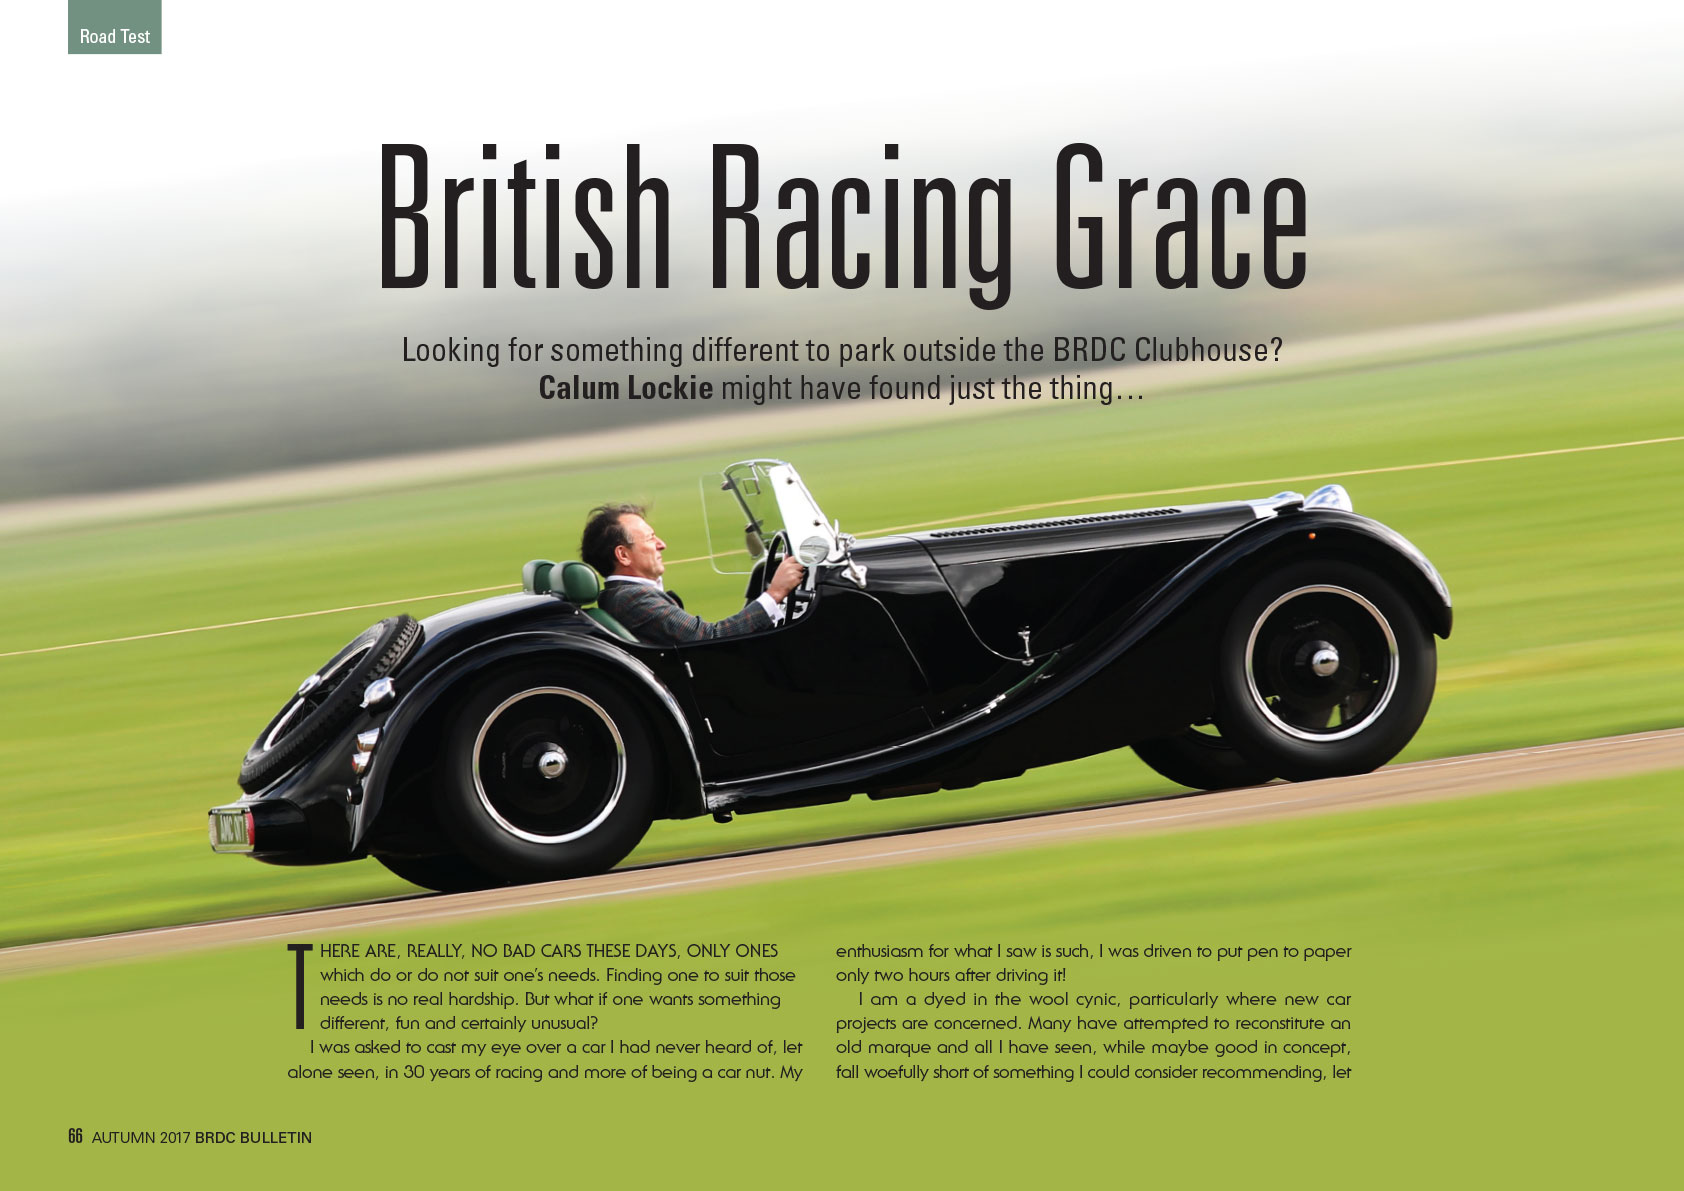 British Racing Grace